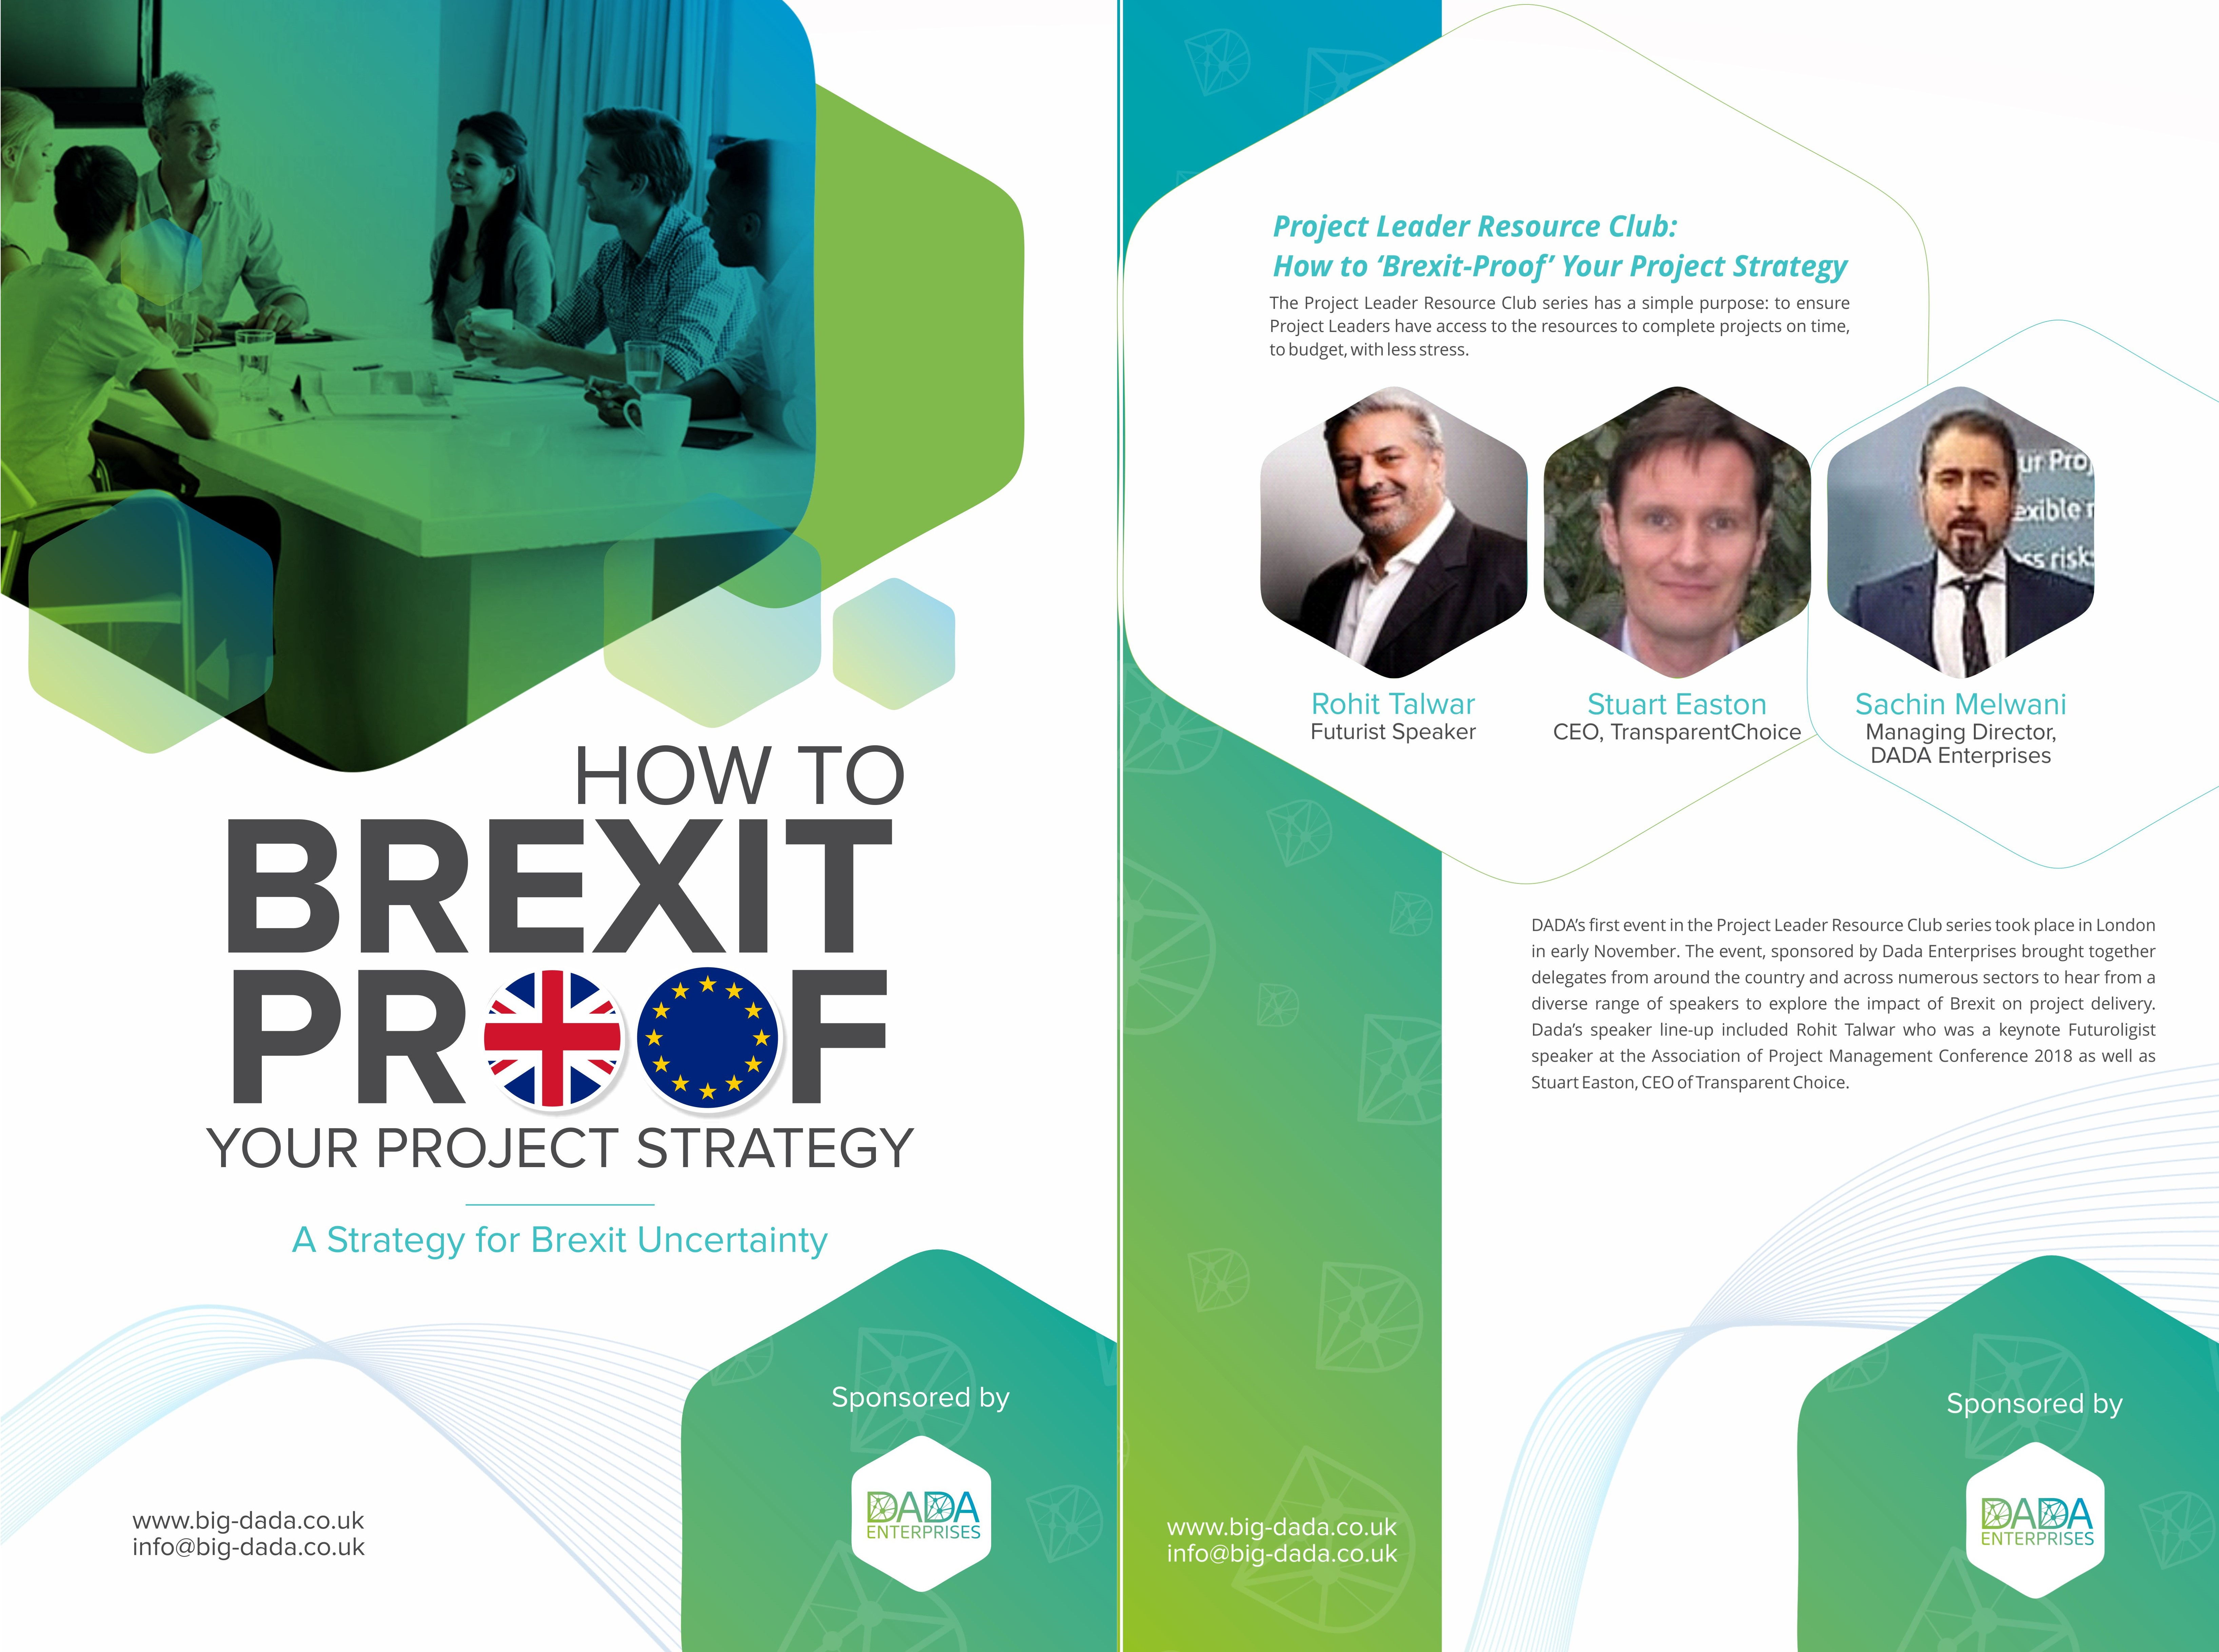 Consultancy.uk Features Dada And Our E-book To Help Leaders 'Brexit-proof' Their Project Strategy